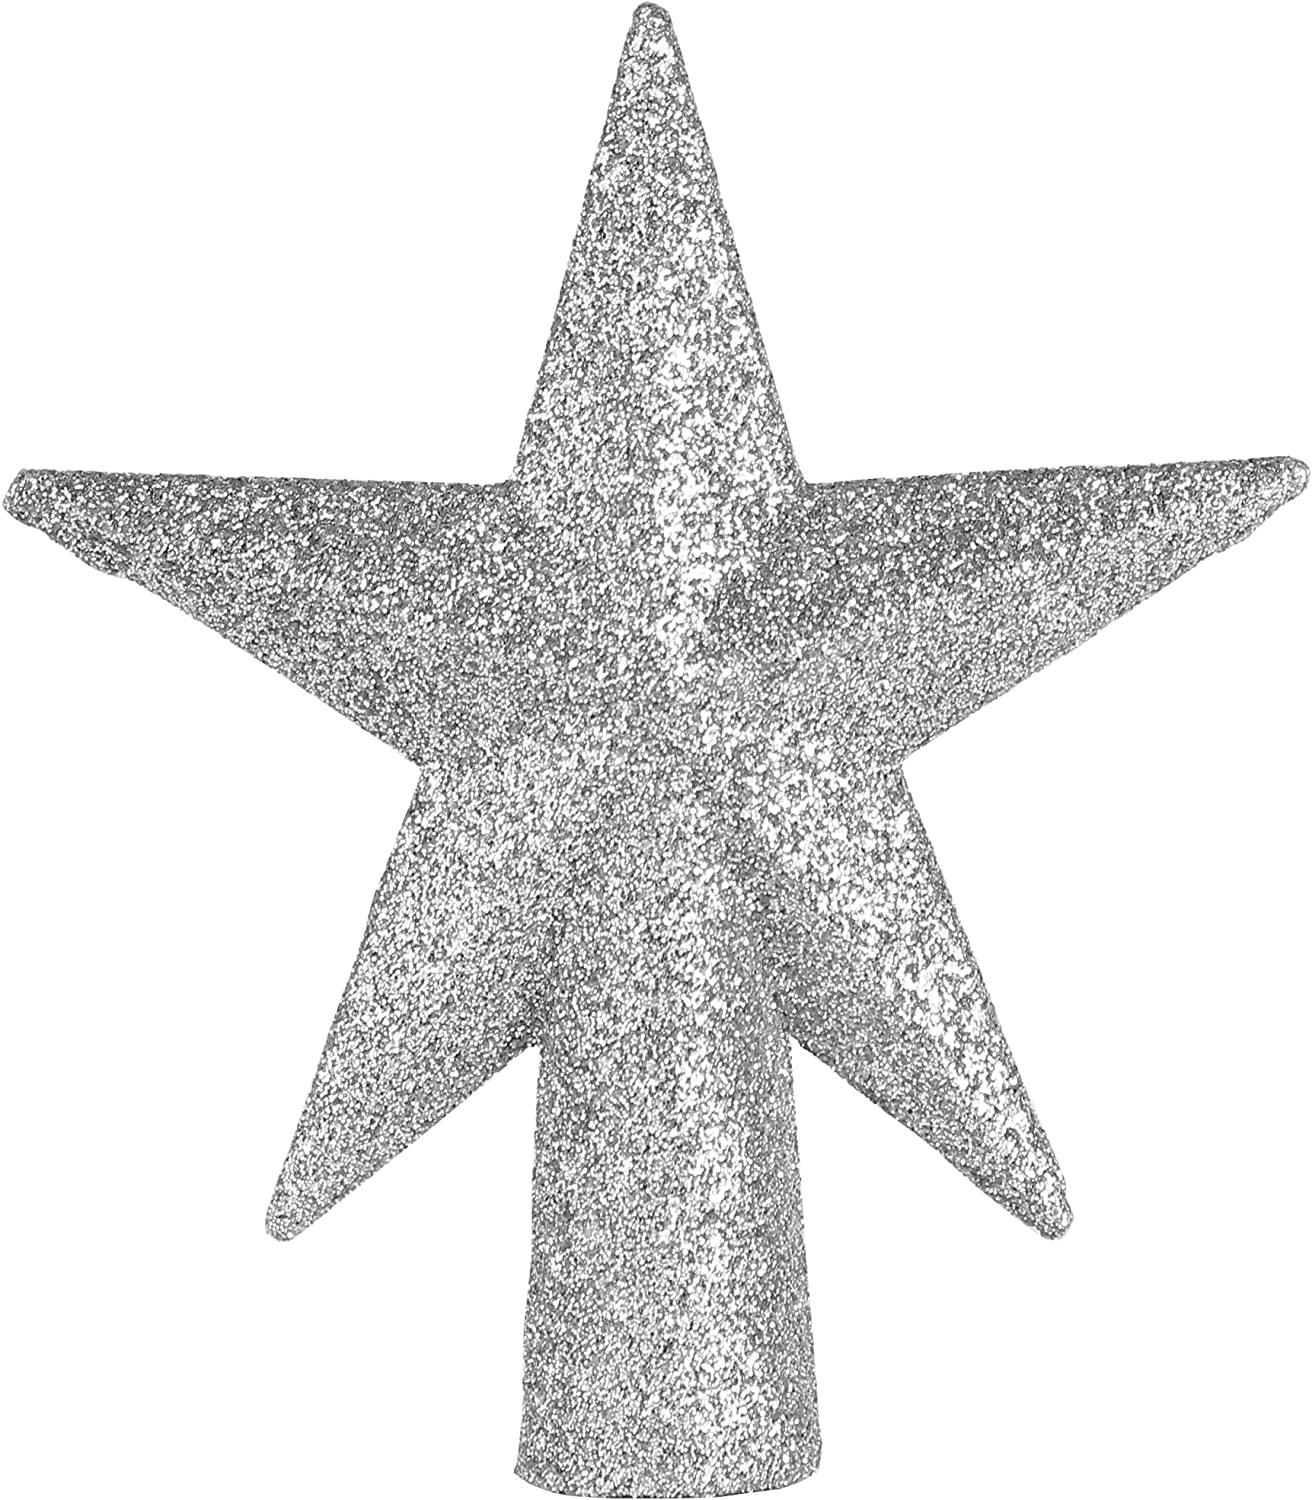 Ornativity Glitter Star Tree Topper - Christmas Mini Silver Decorative Holiday Bethlehem Star Ornament